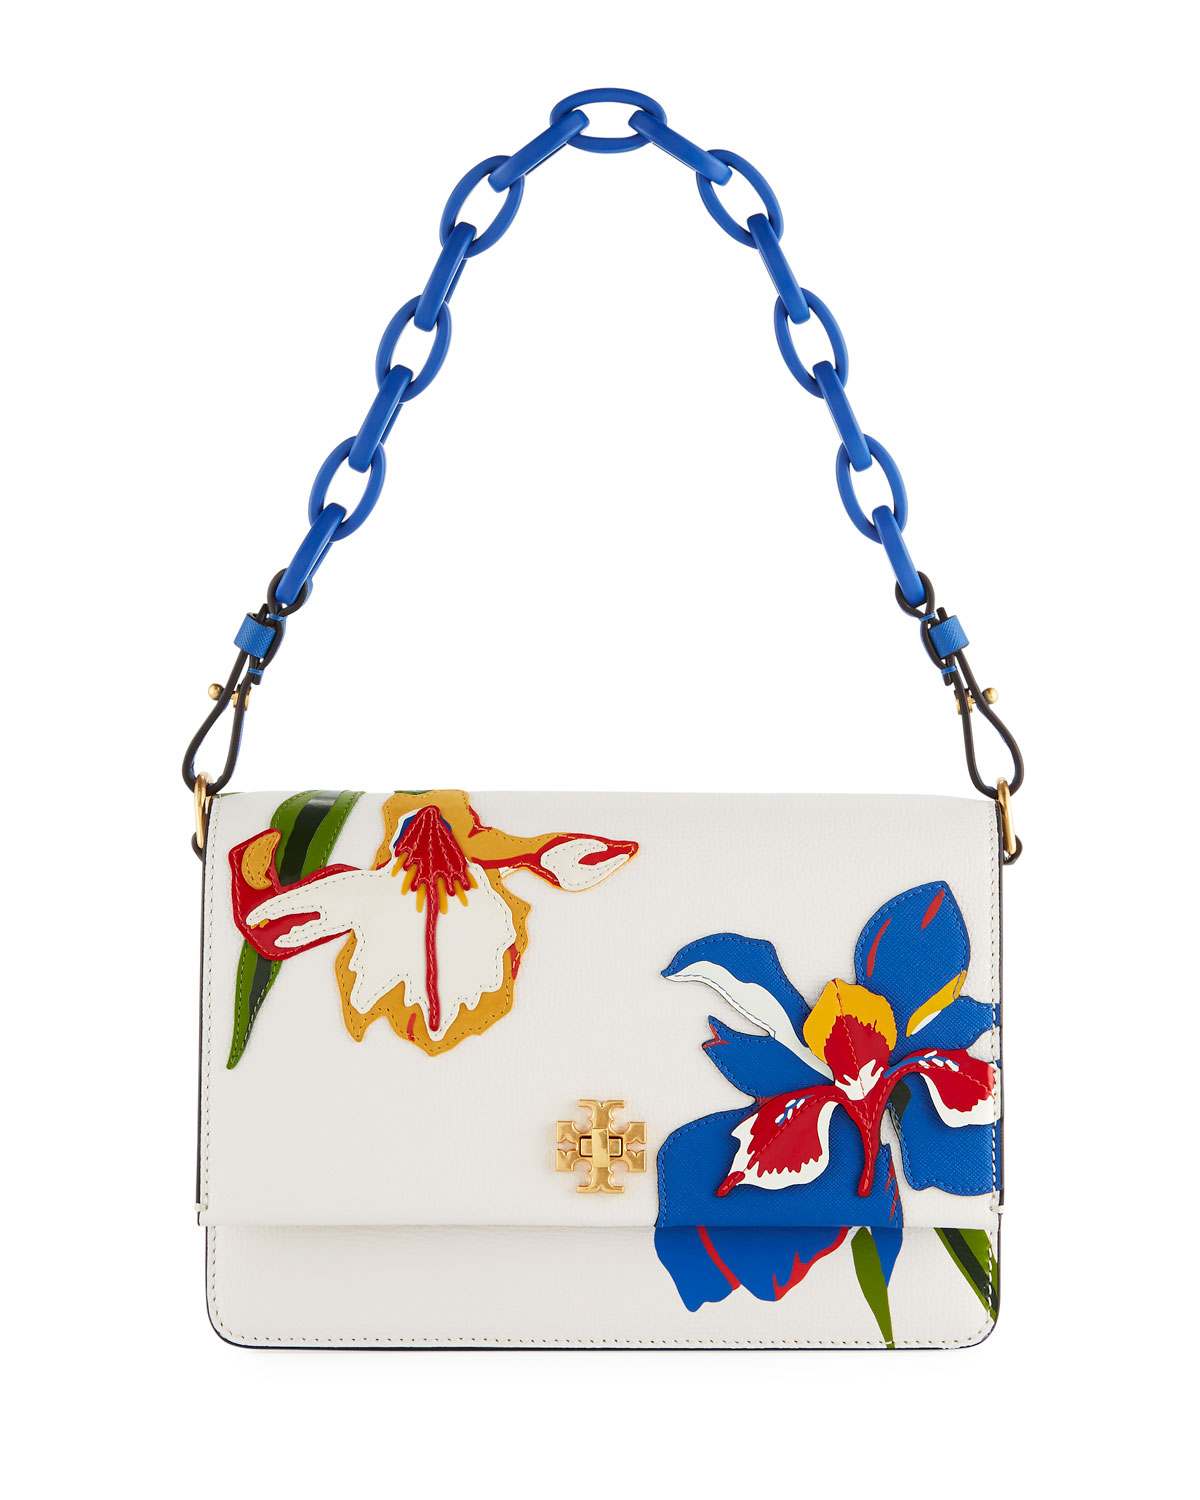 Kira Appliqué Chain Shoulder Bag